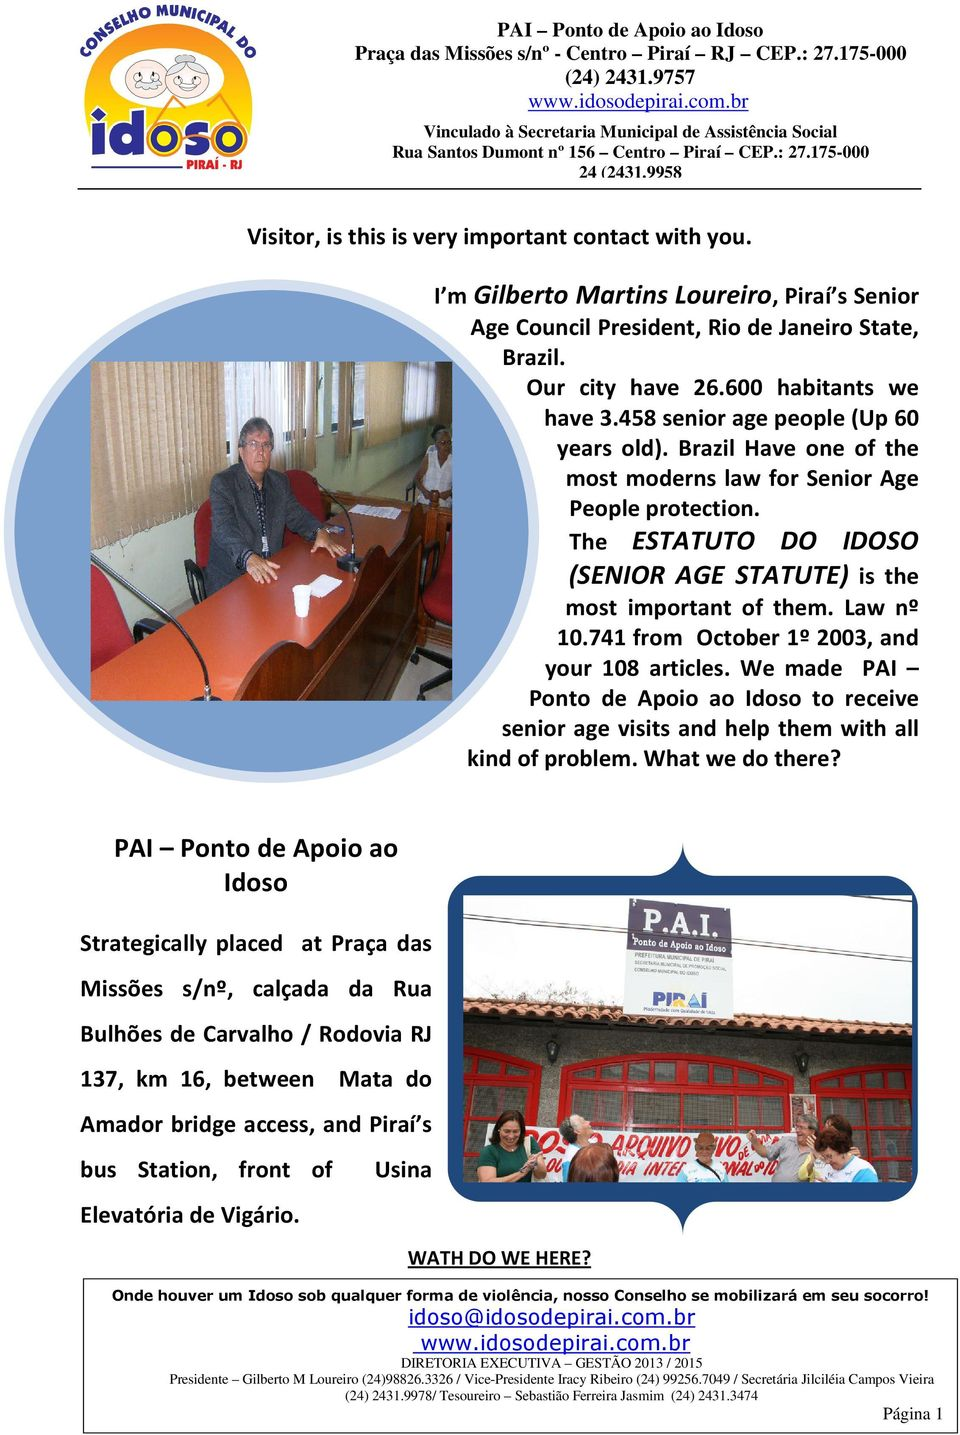 741 from October 1º 2003, and your 108 articles. We made PAI Ponto de Apoio ao Idoso to receive senior age visits and help them with all kind of problem. What we do there?